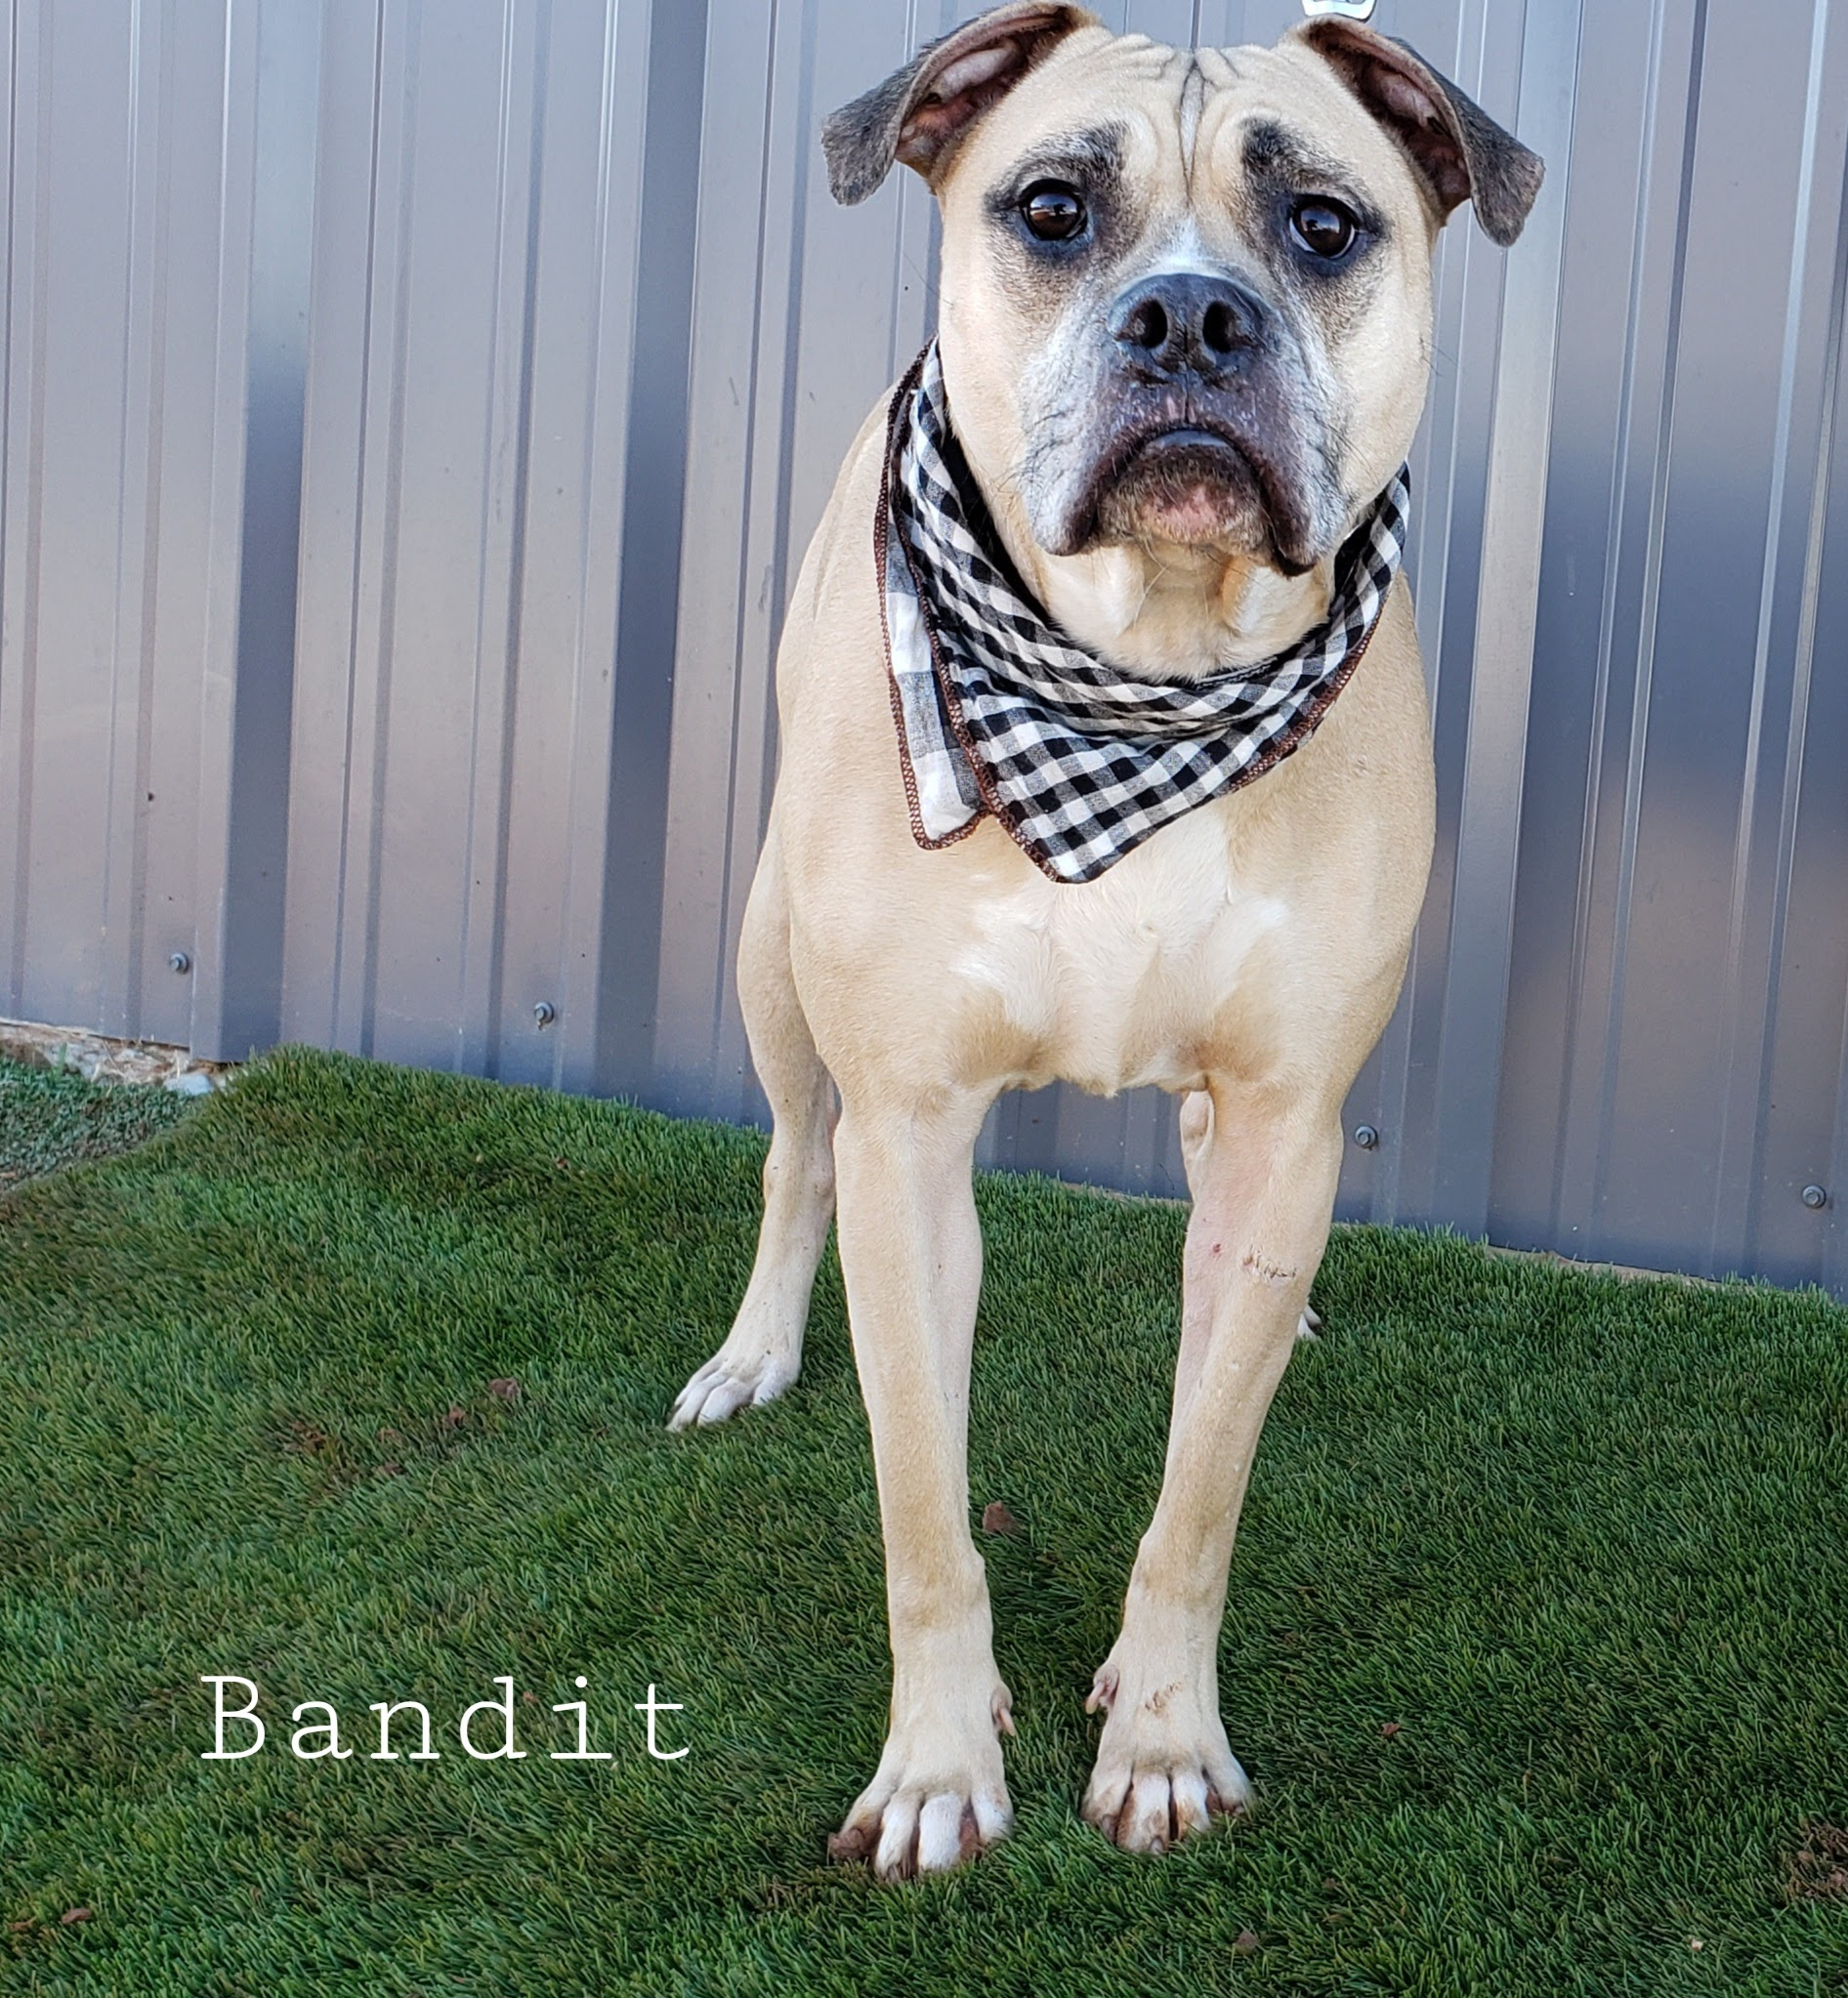 Bandit-4 years old male